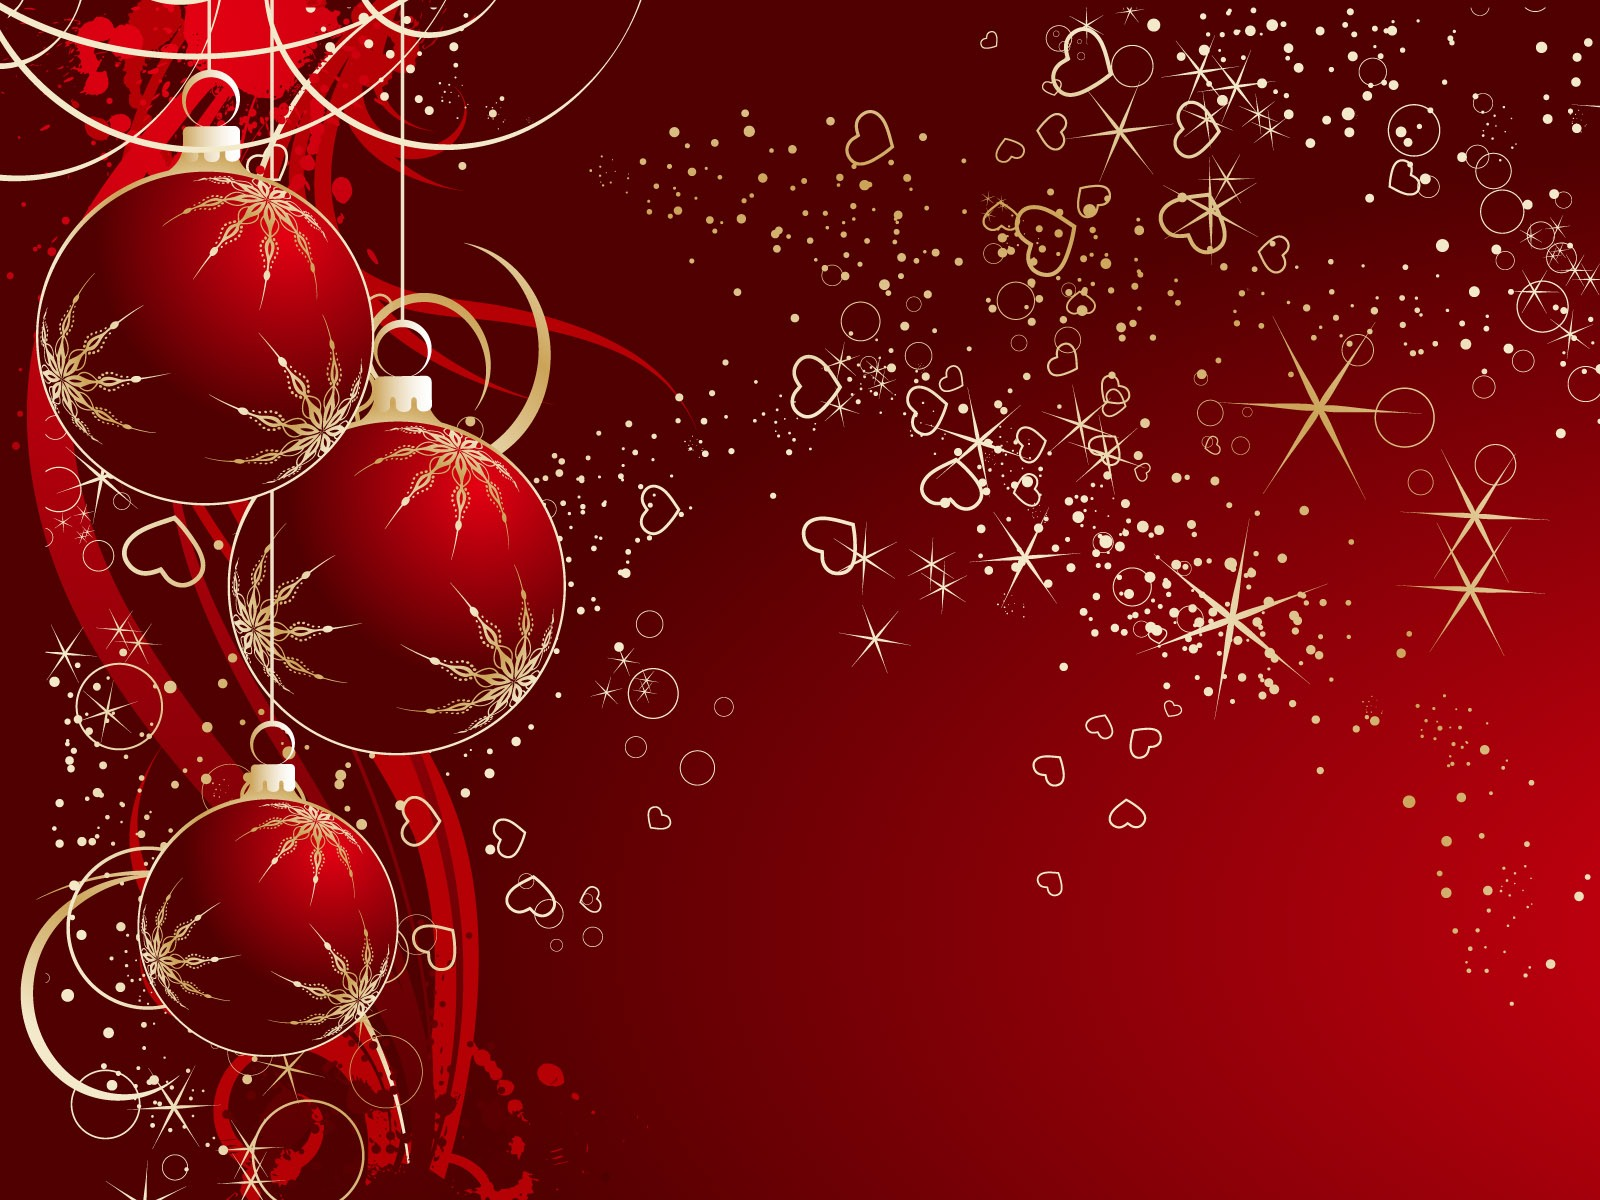 Christmas Wallpaper HDComputer Wallpaper Wallpaper 1600x1200